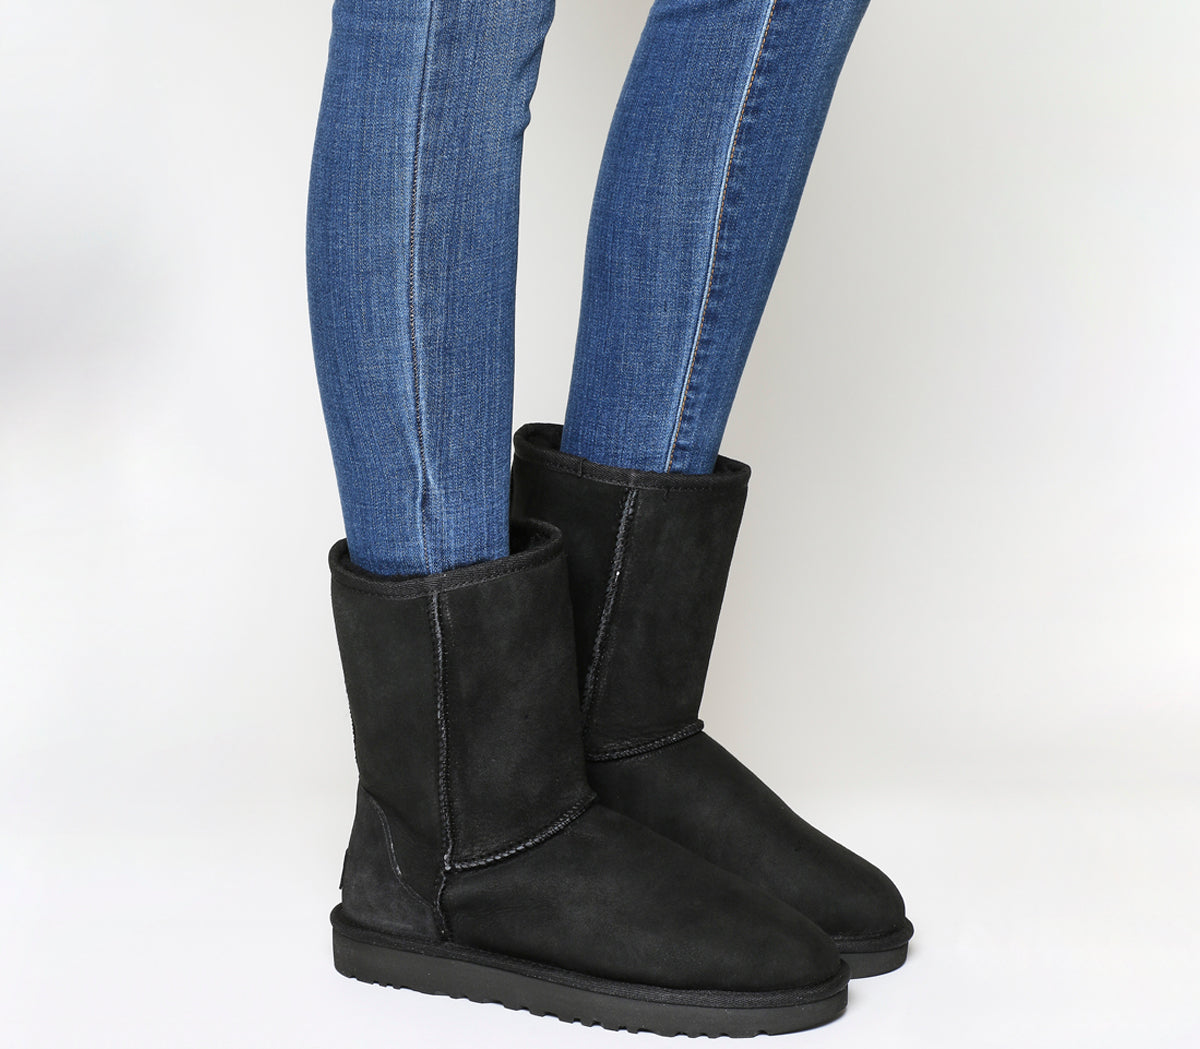 Womens Ugg Classic Short II Boots Black Suede